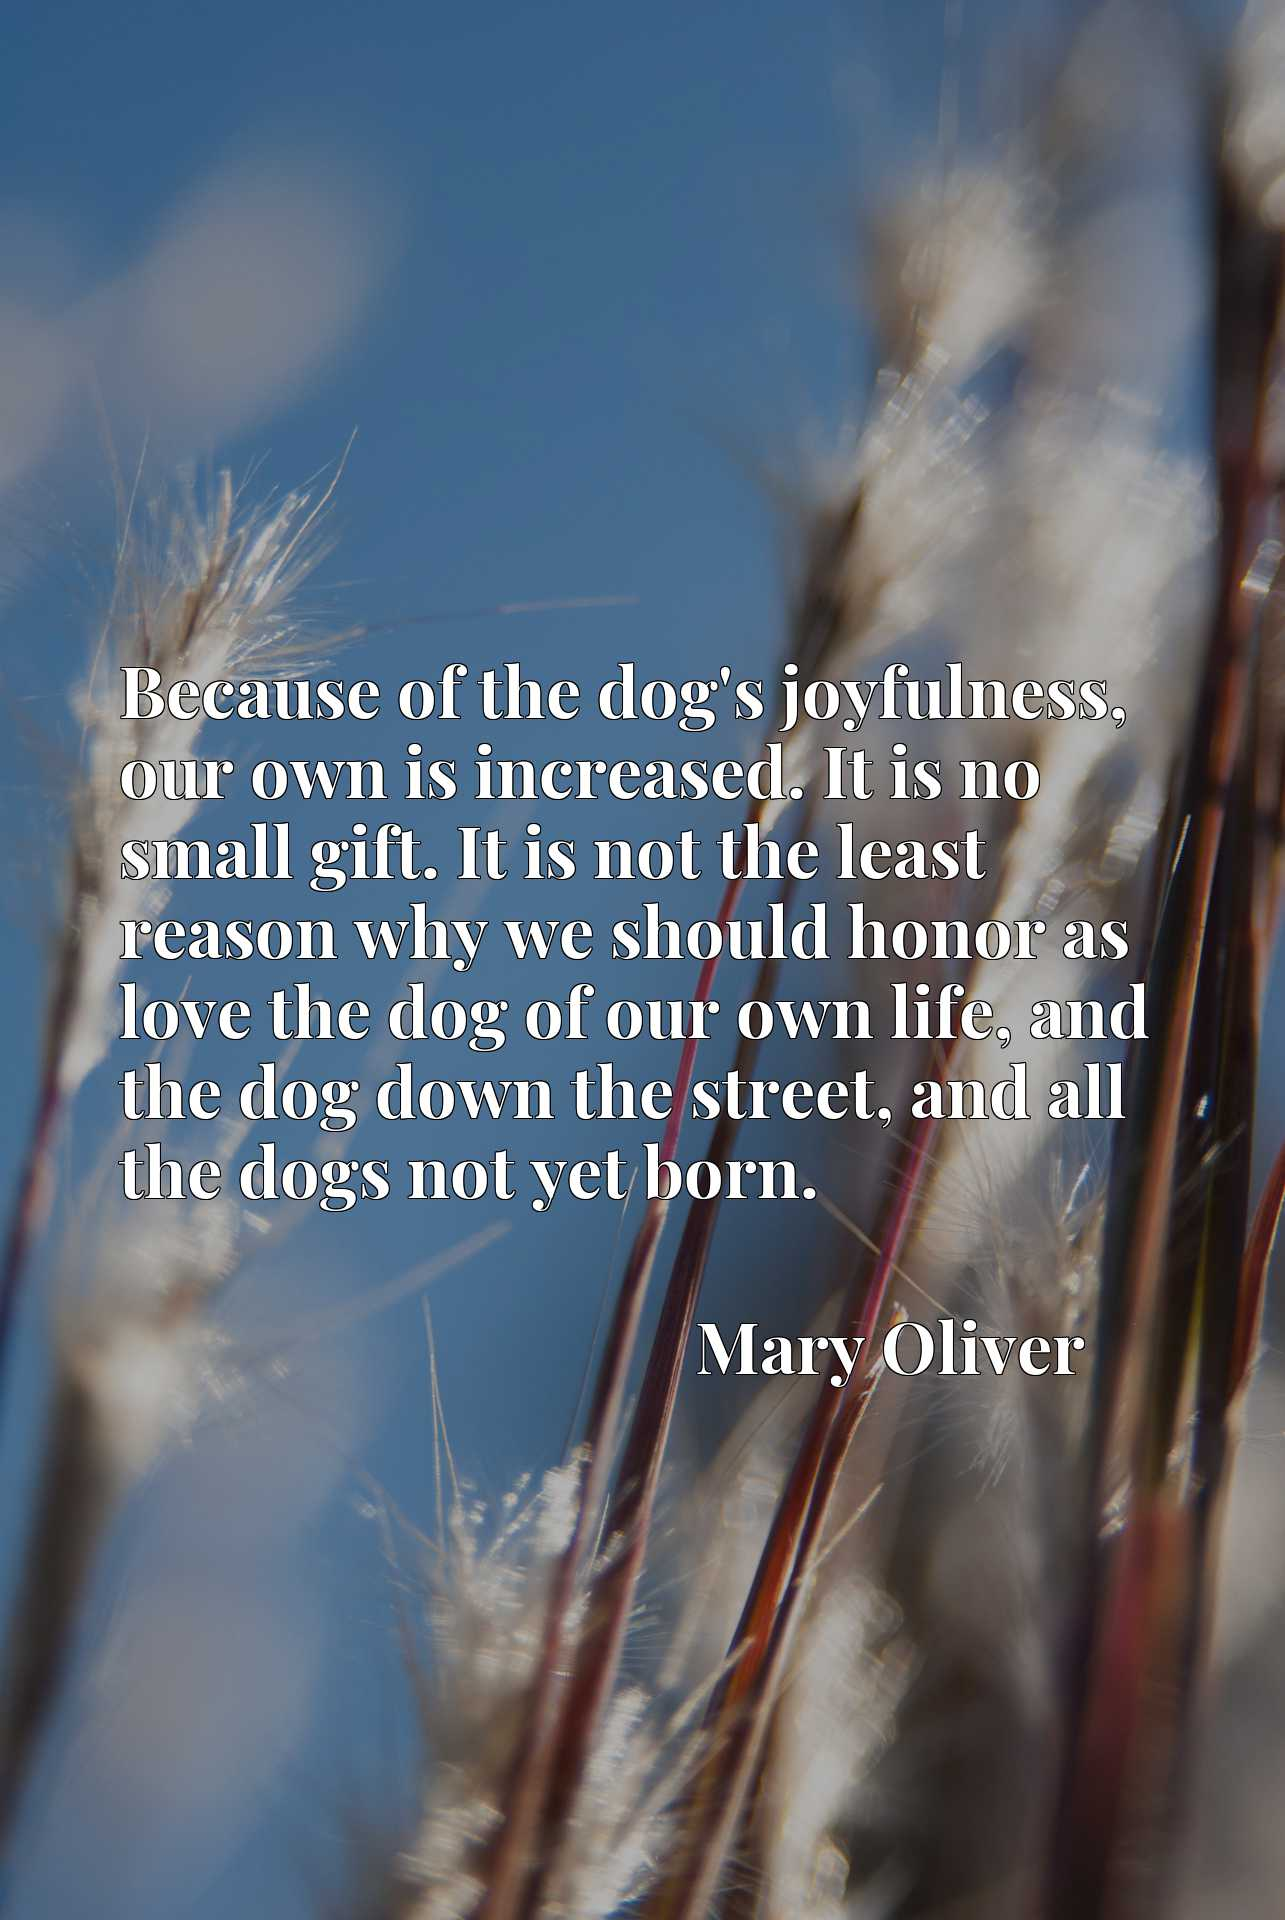 Because of the dog's joyfulness, our own is increased. It is no small gift. It is not the least reason why we should honor as love the dog of our own life, and the dog down the street, and all the dogs not yet born.